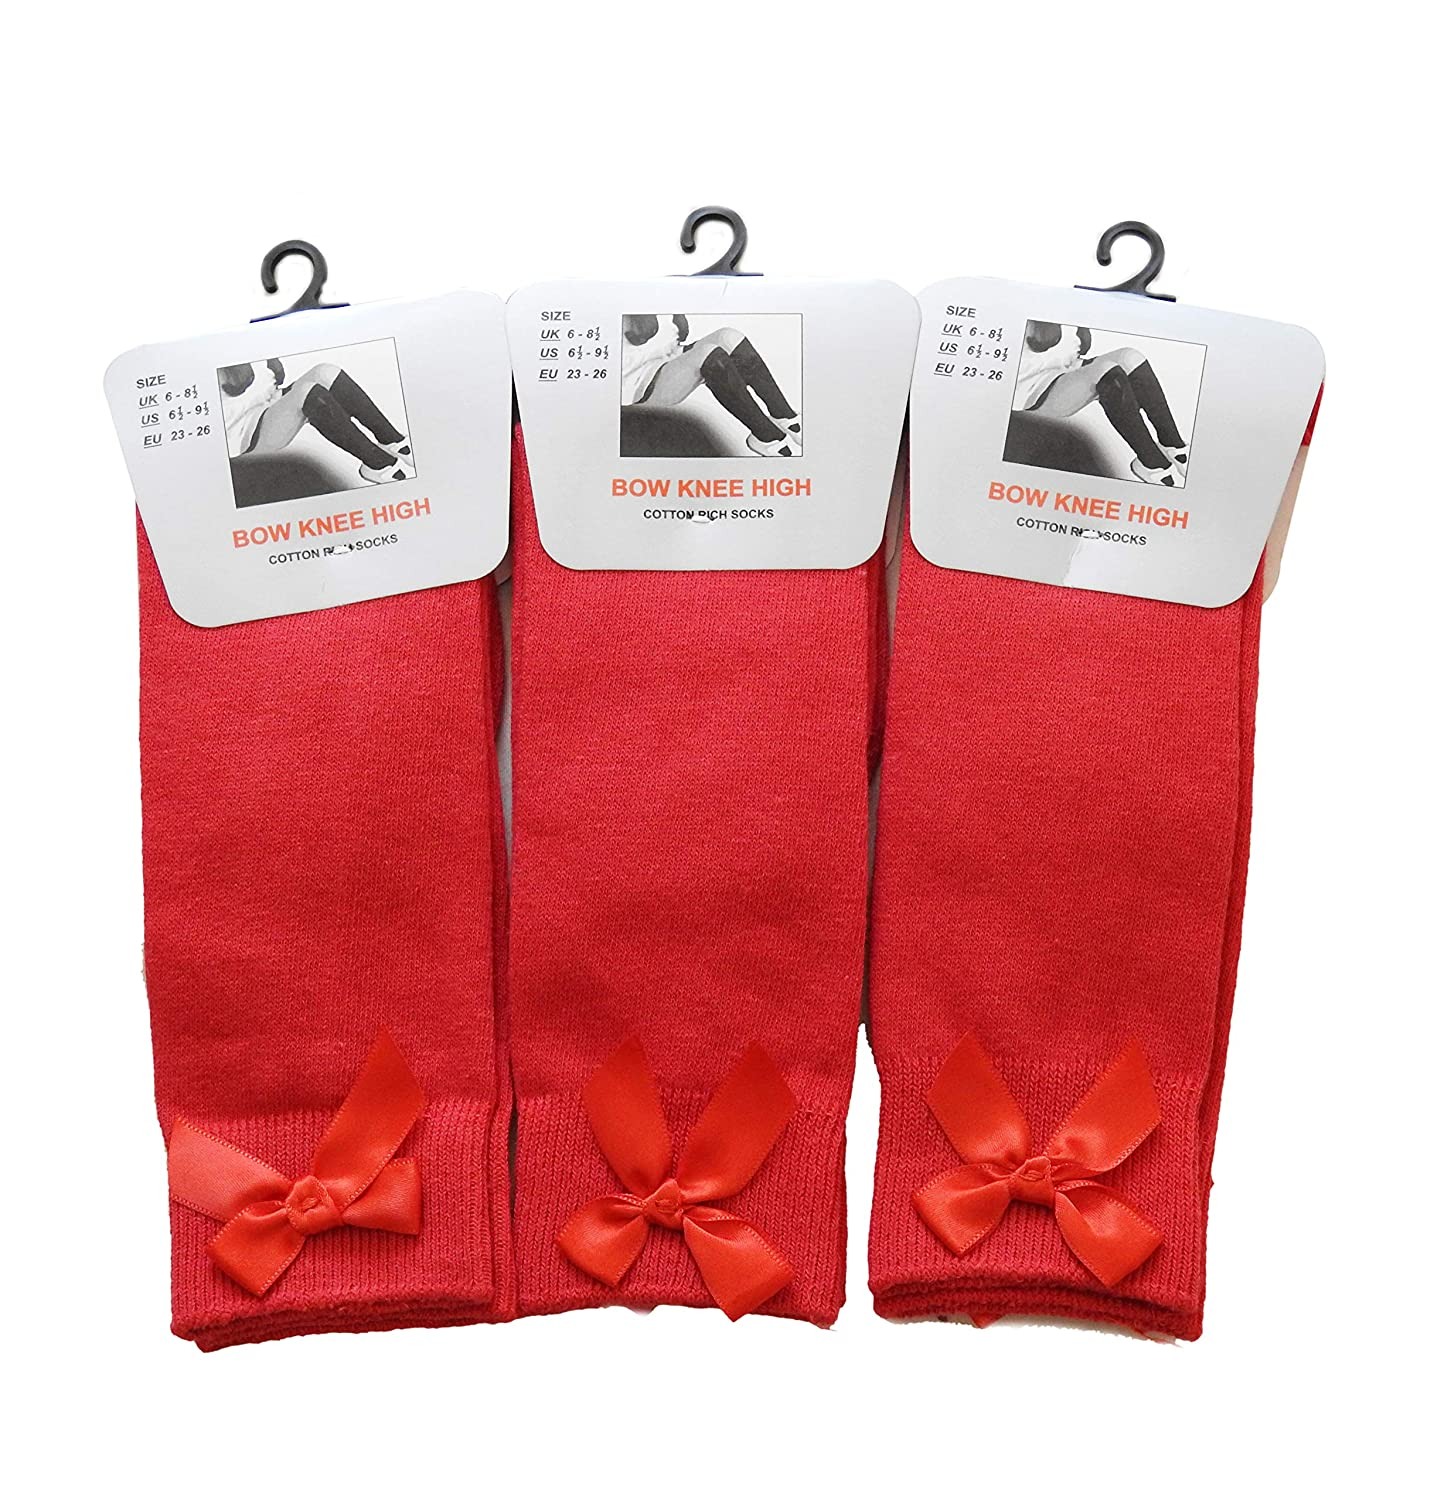 Socks Bow Knee High 3 pairs School Girls & Kids Plain Long Length Cotton Stretch With all size & colour (Set of 3 pairs)